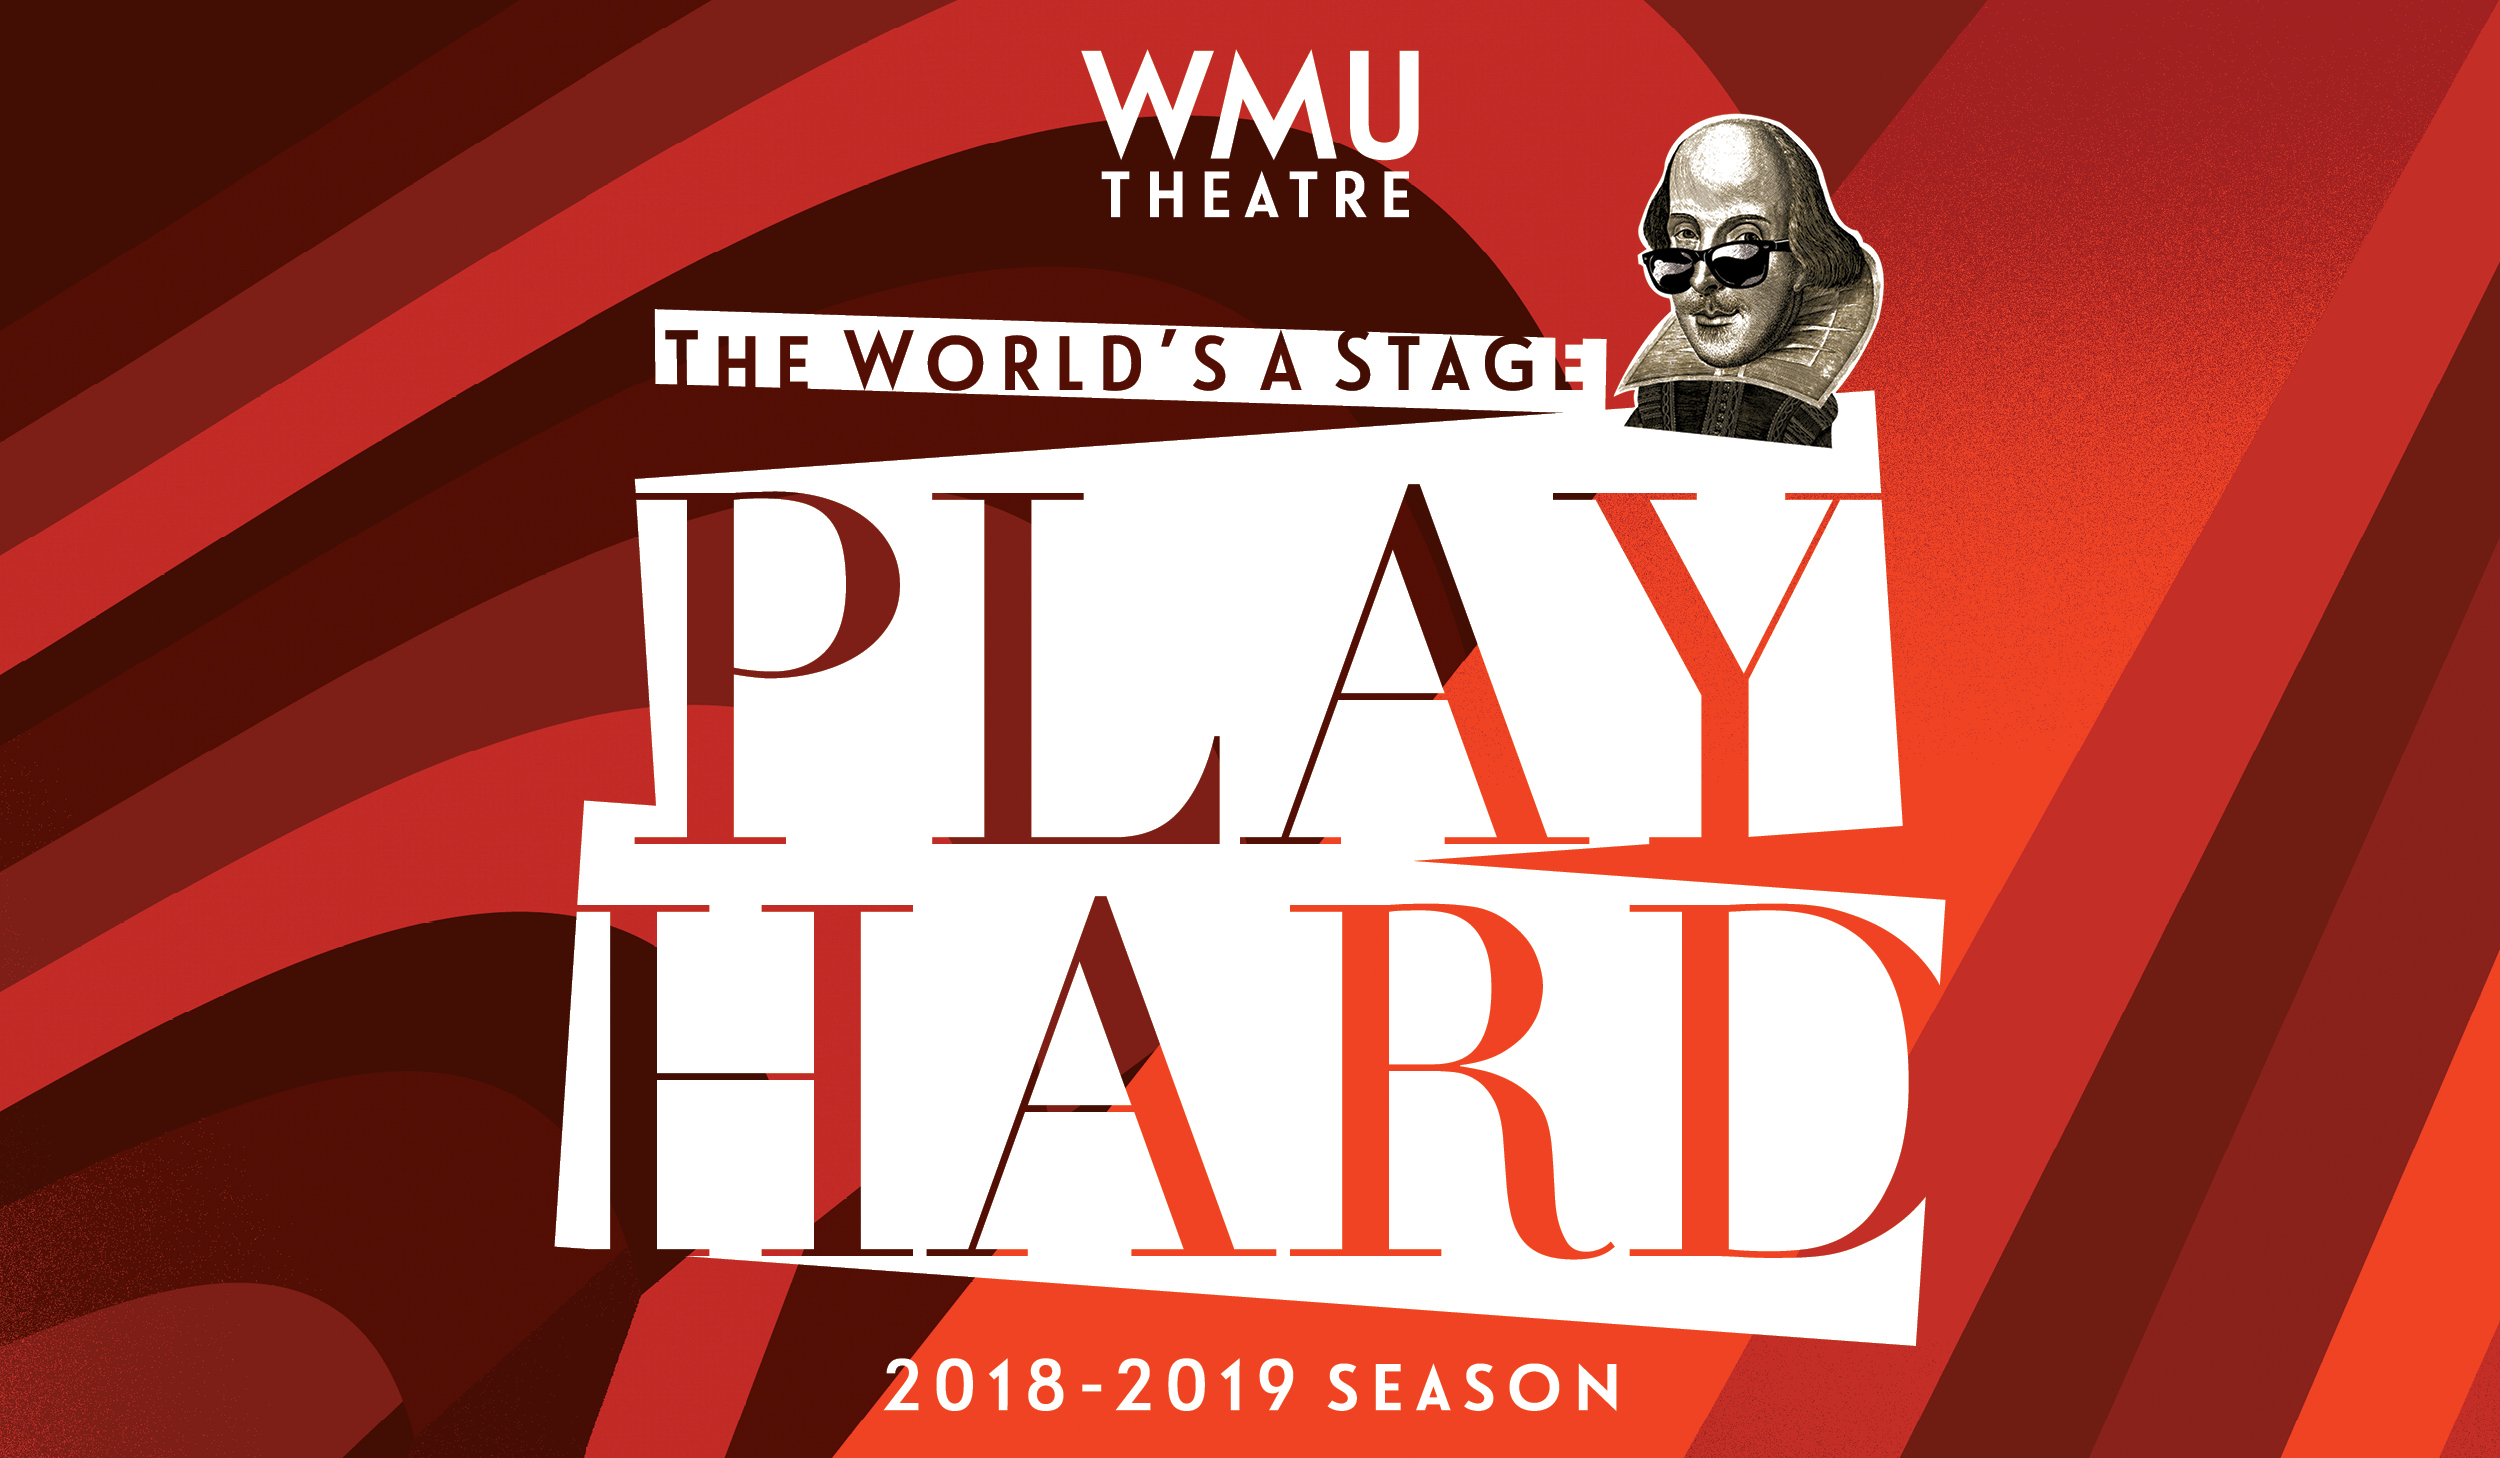 WMU Theatre, The World's A Stage, 2018-2019 Season, image of Shakespeare wearing sunglasses